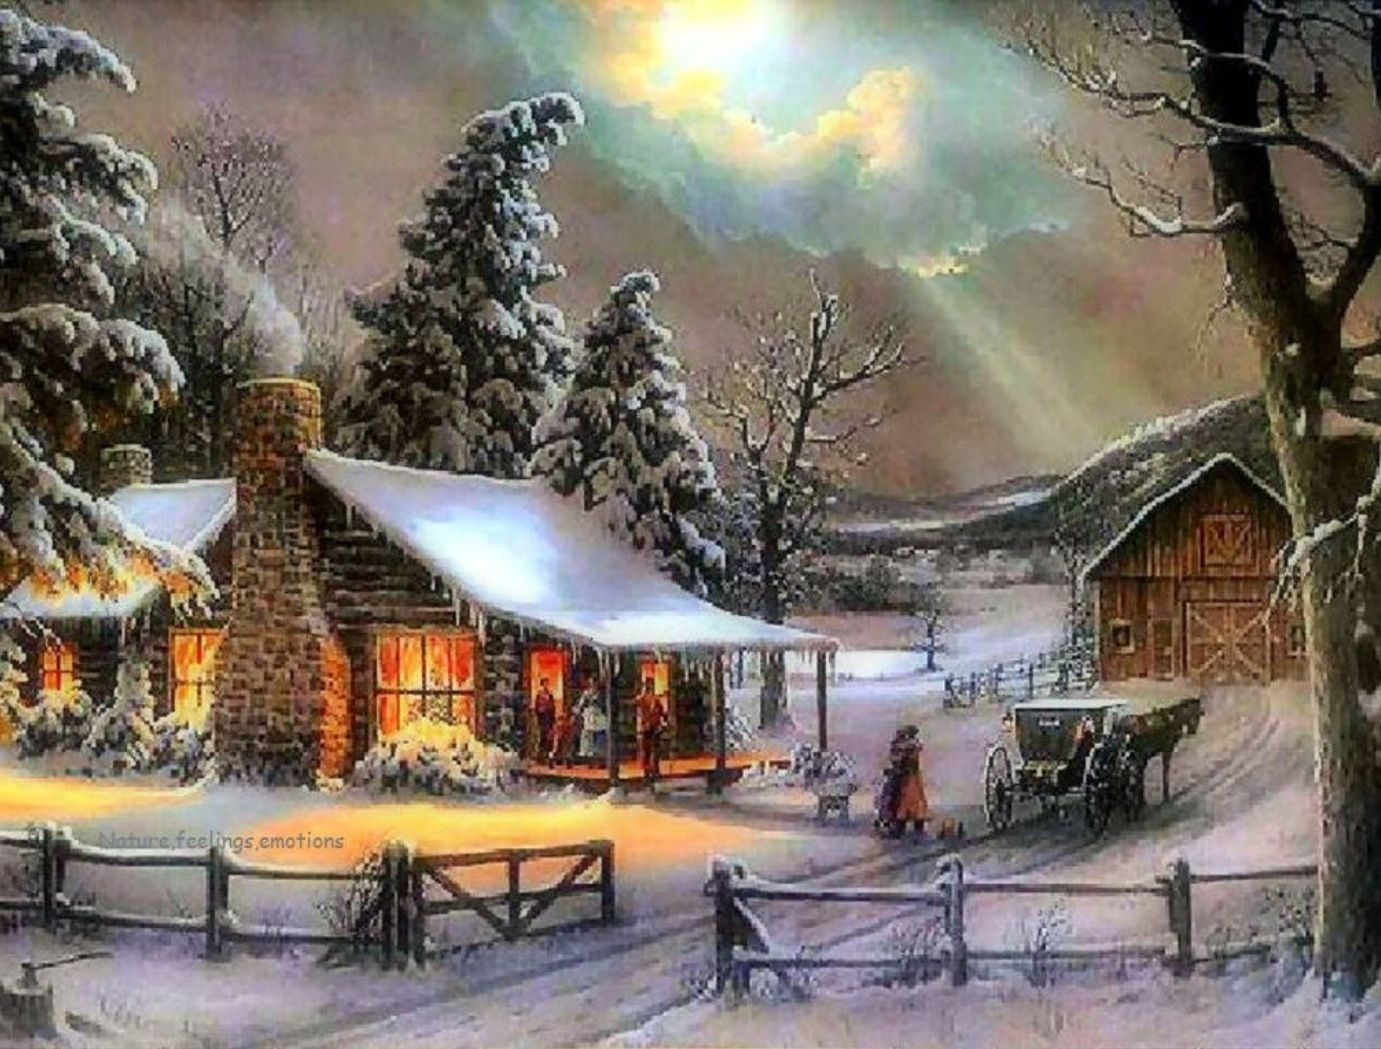 Snowy Cabin Winter Scenes Christmas Scenes Christmas Paintings